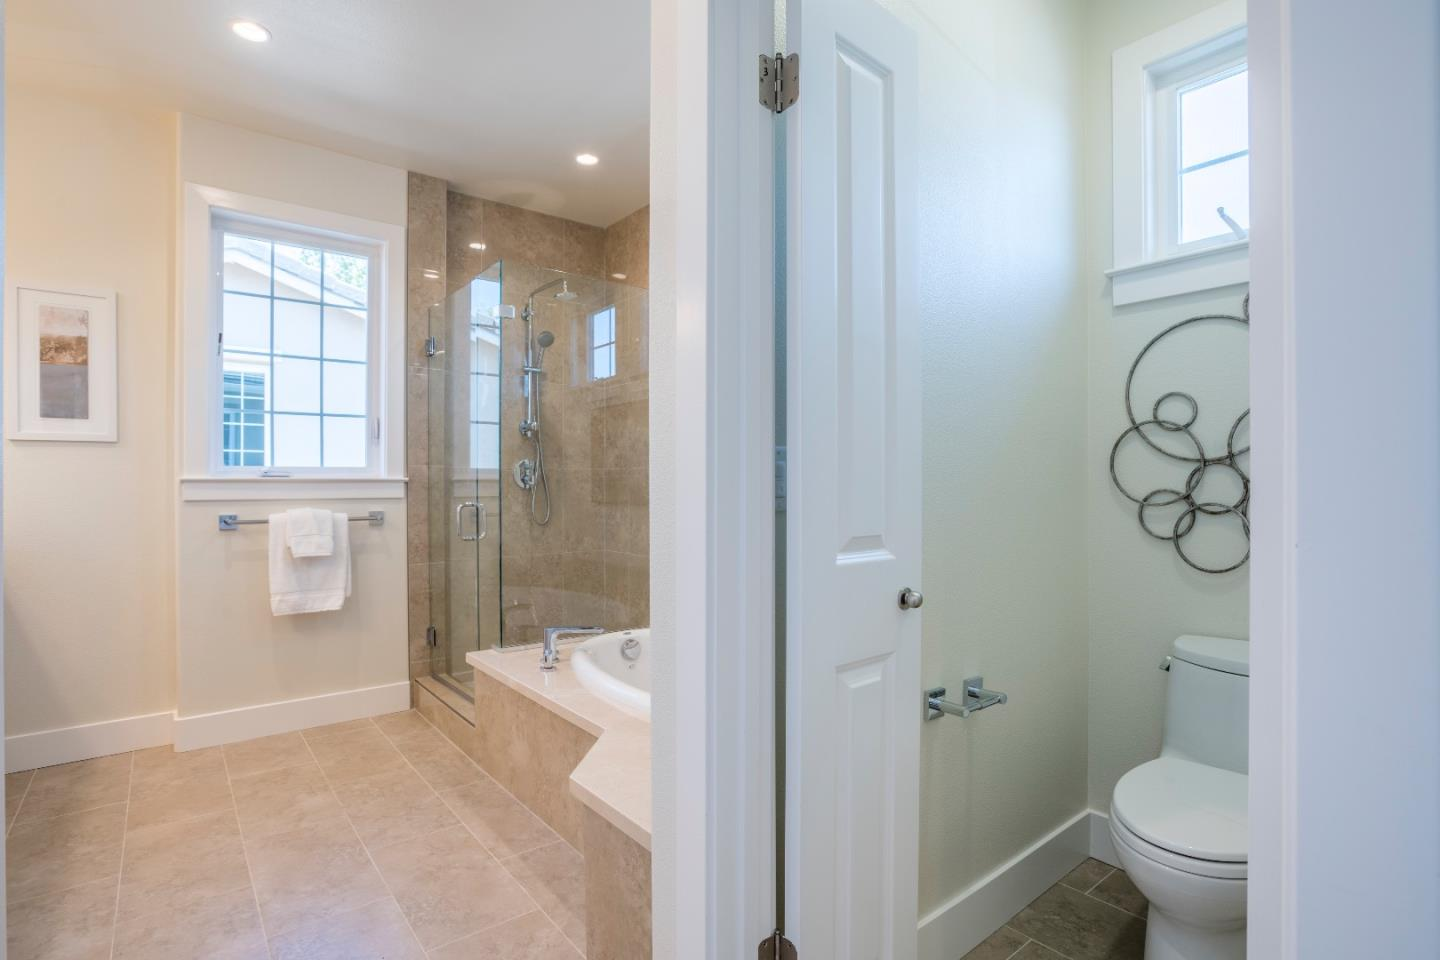 Additional photo for property listing at 1084 Ed Roth Terrace  Sunnyvale, Kalifornien 94086 Vereinigte Staaten